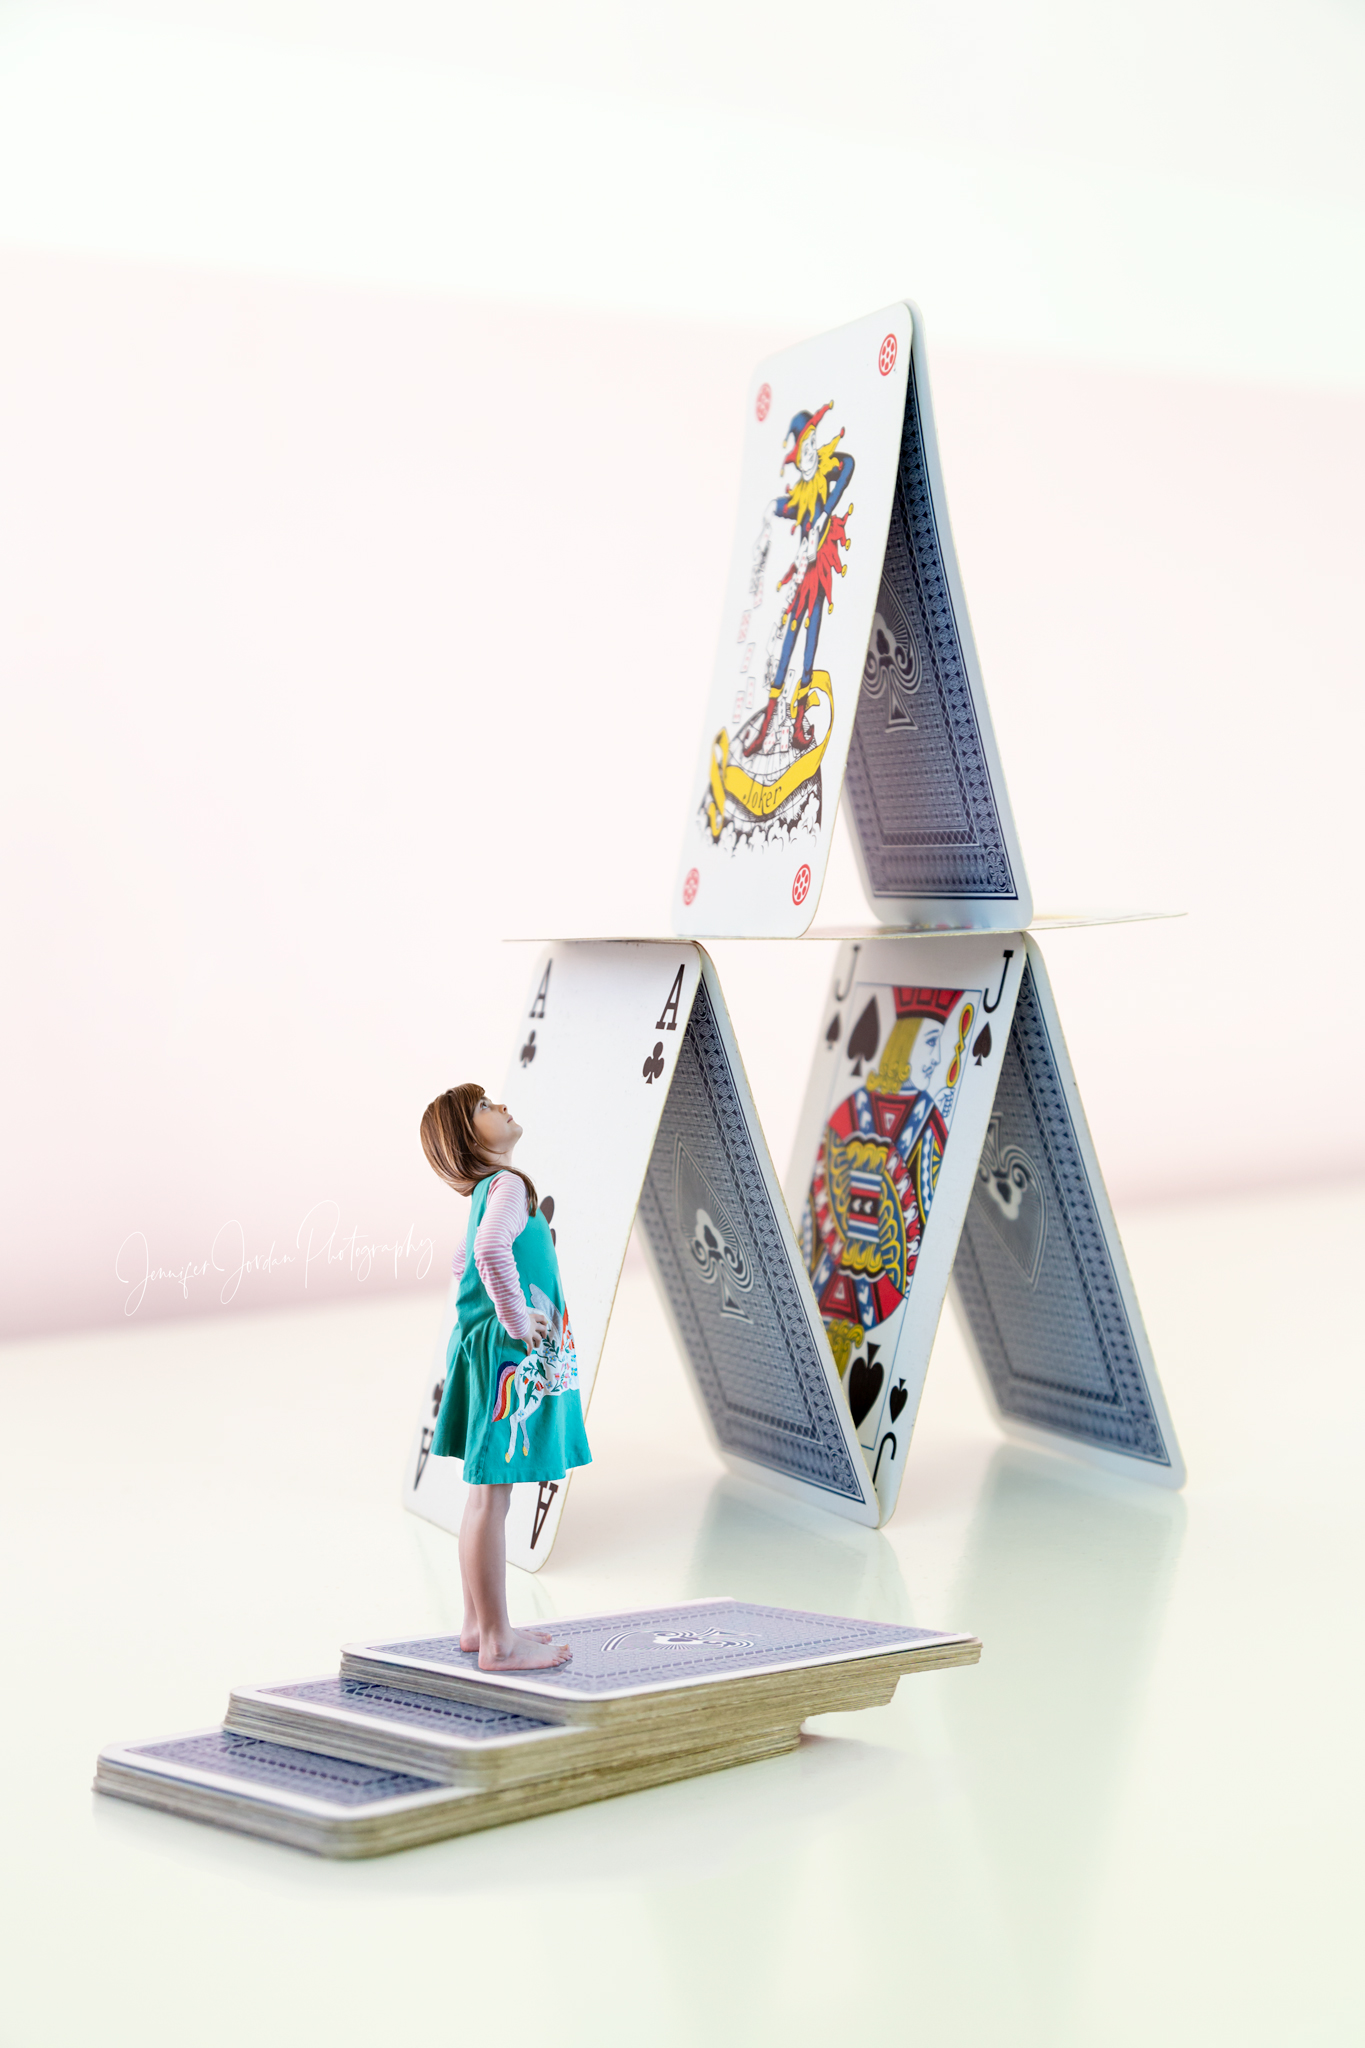 Creative imagery by Jennifer Jordan Photography. Little girl builds a giant house of cards.